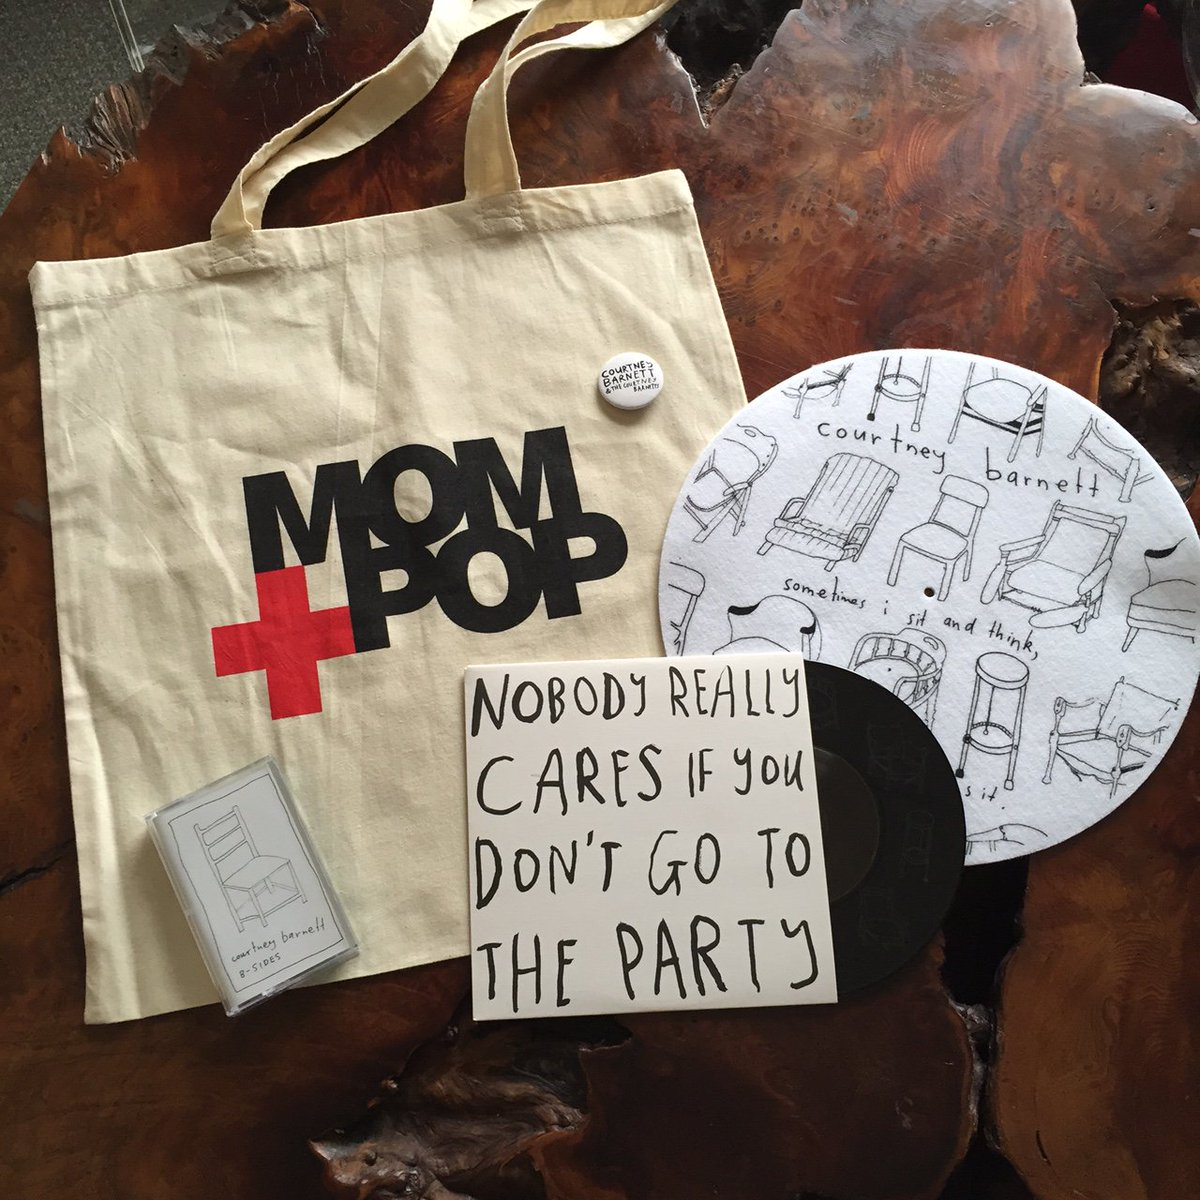 Love Grammy nominated artist @courtneymelba? We're giving away 3 swag bags. RT for a chance to win. @momandpopmusic https://t.co/nlVuZMCyiq